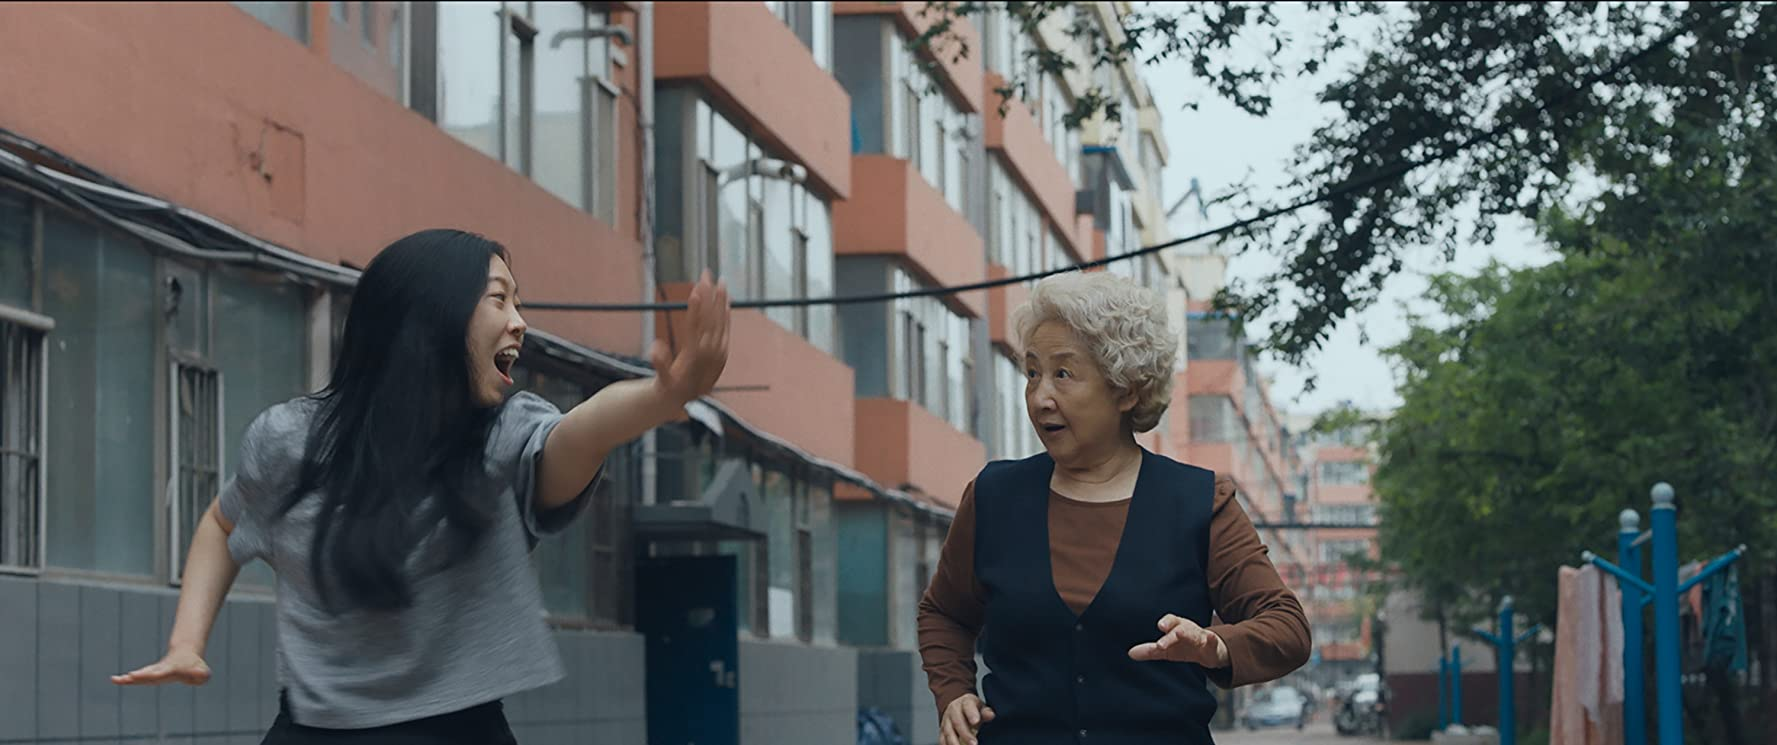 Zhao Shuzhen and Awkwafina in The Farewell (2019)